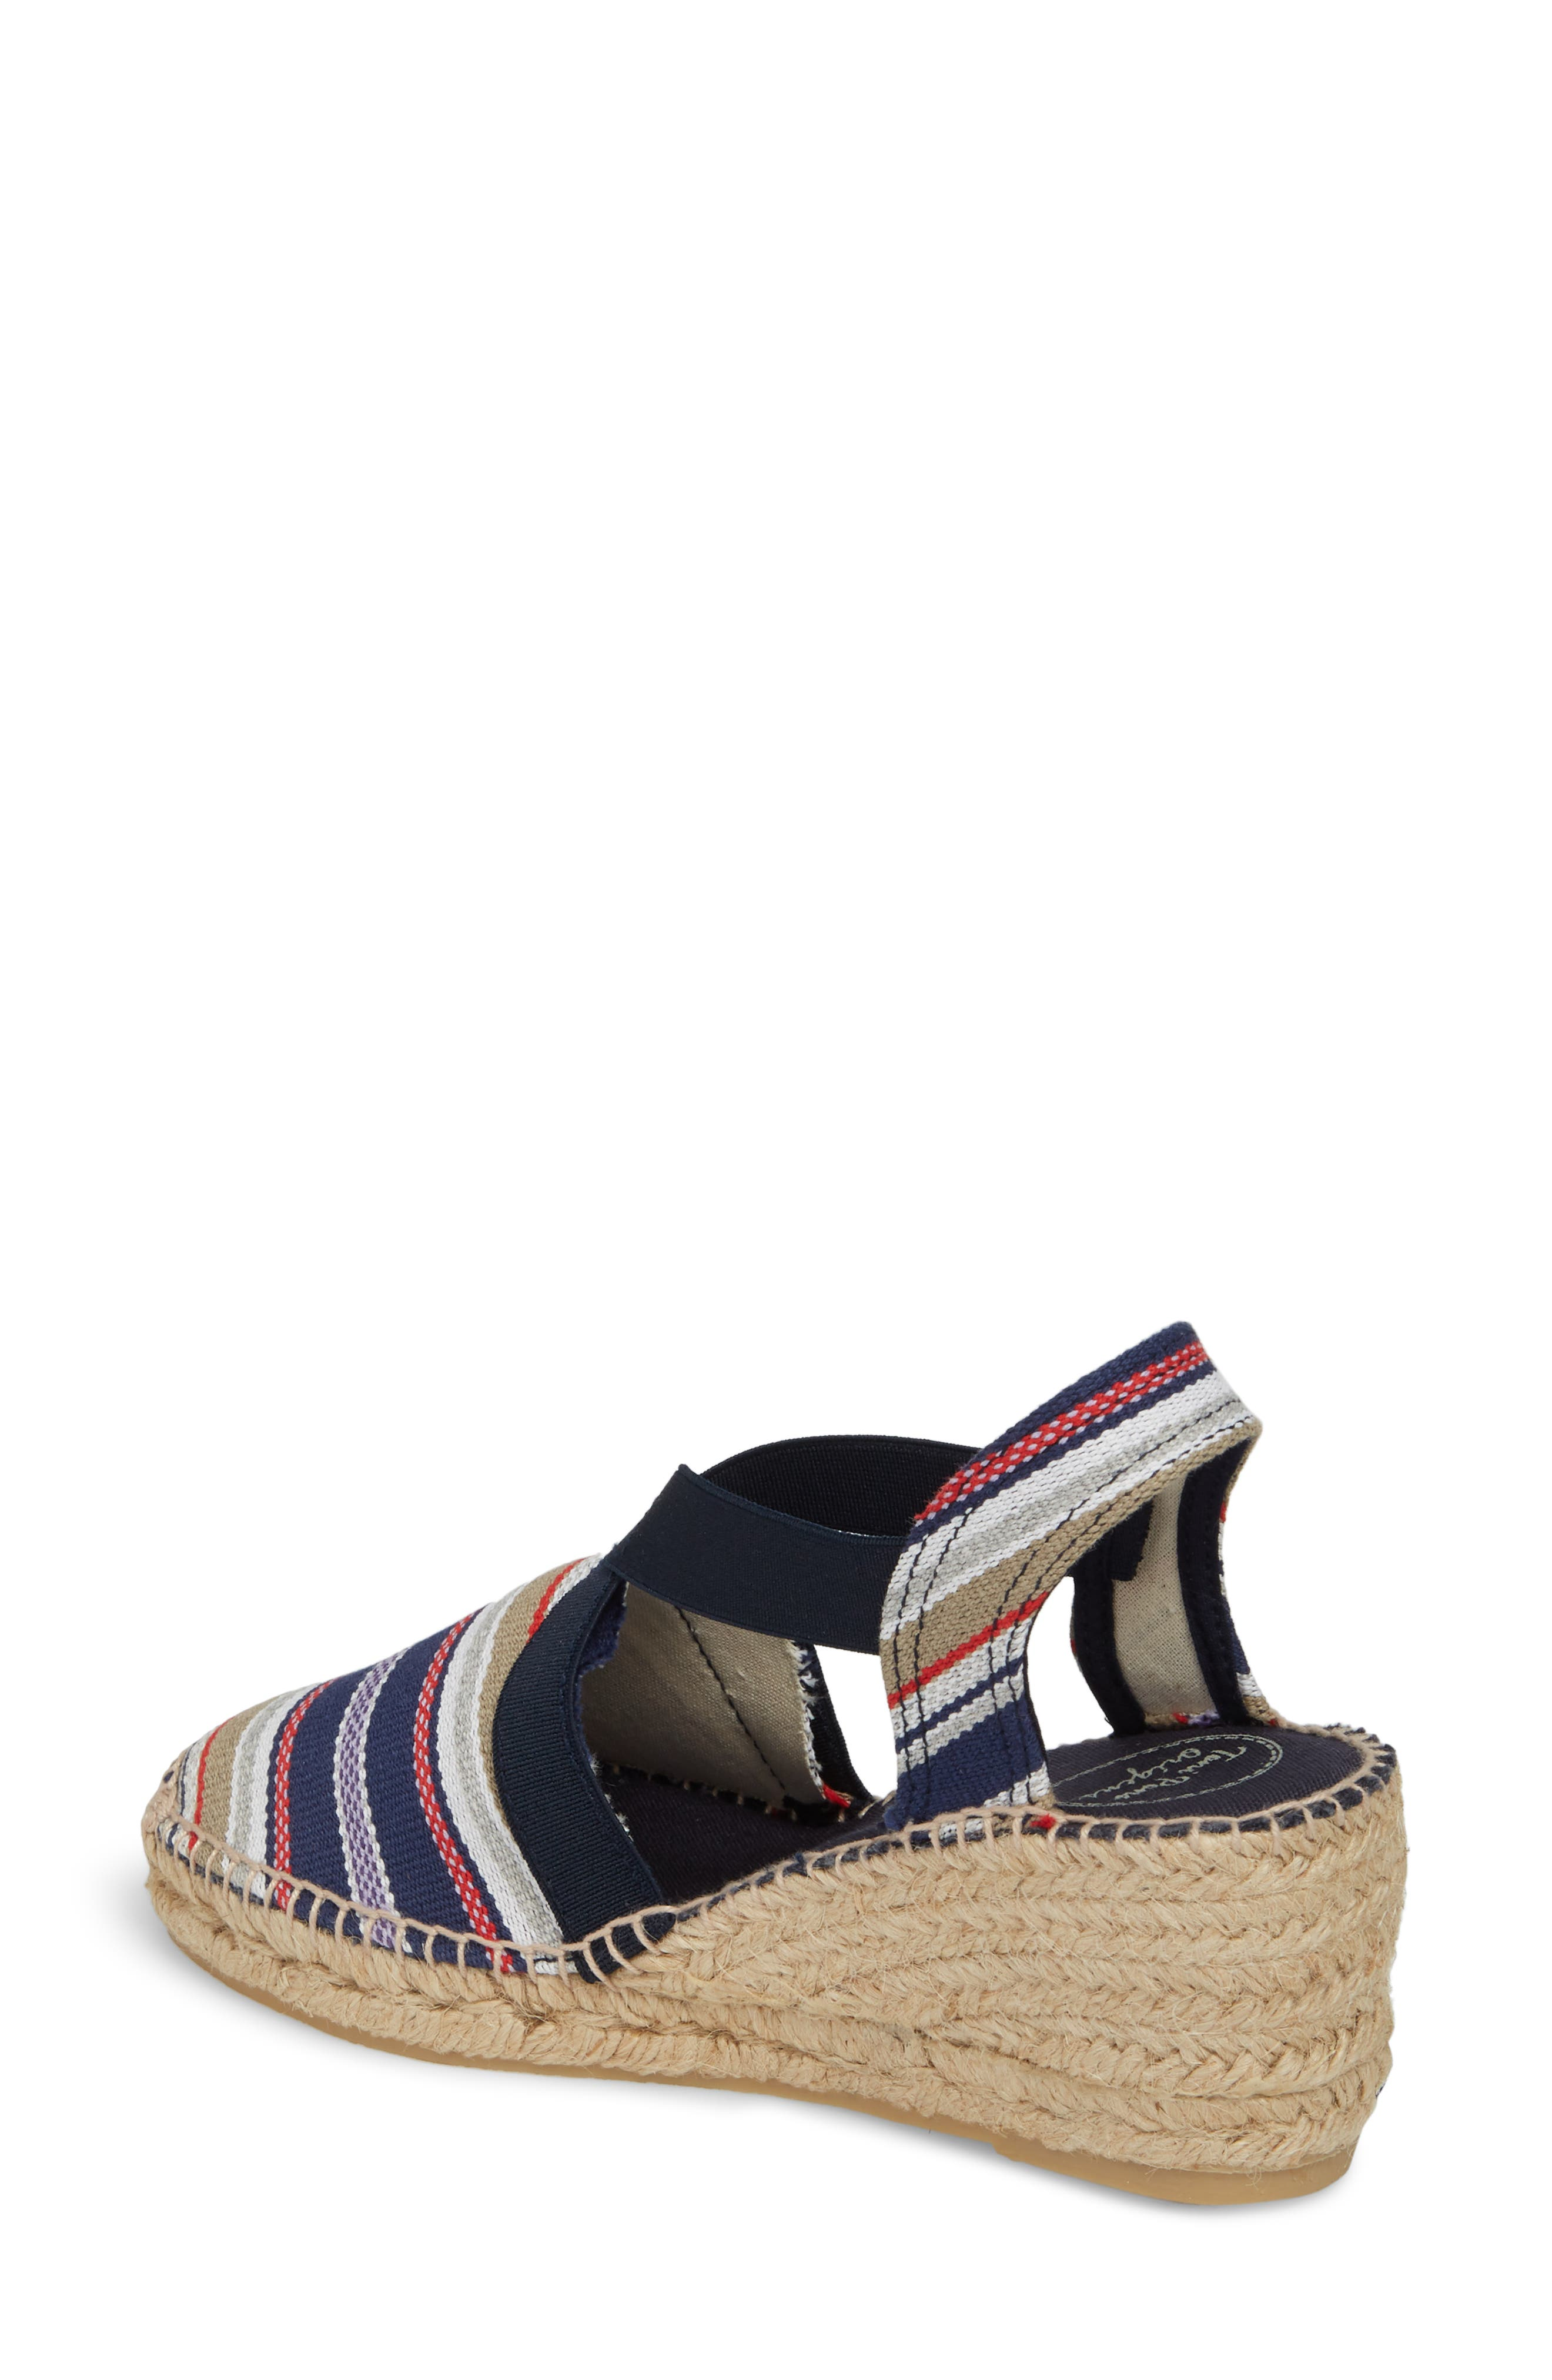 'Tarbes' Espadrille Wedge Sandal,                             Alternate thumbnail 2, color,                             Navy Fabric